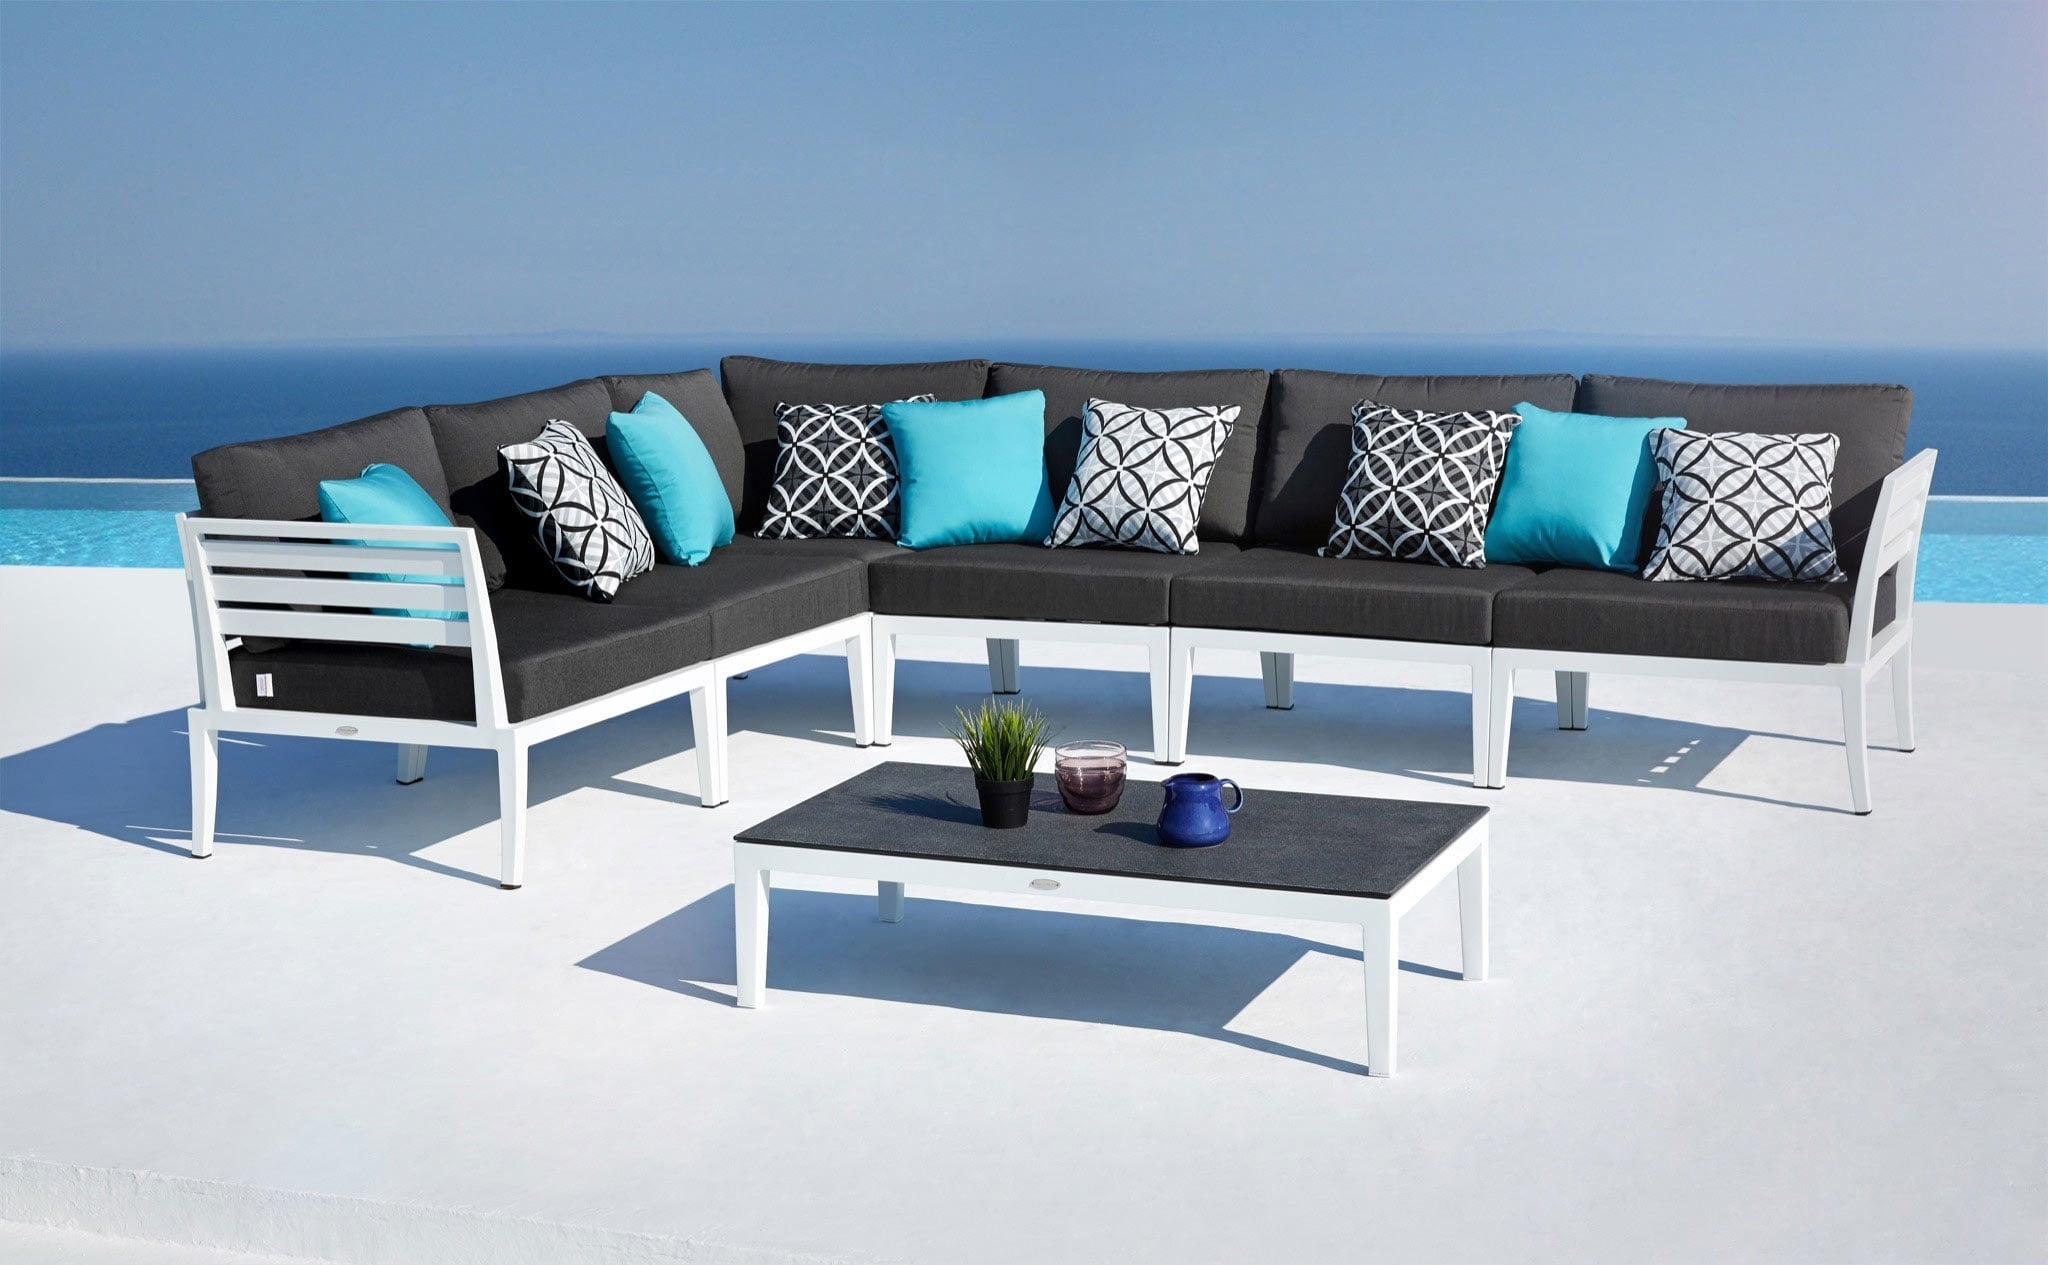 Image of: Modern Outdoor Lounge Furniture Set Joins Oceanweave Collection Within Modern Outdoor Lounge Furniture Best Modern Outdoor Lounge Furniture